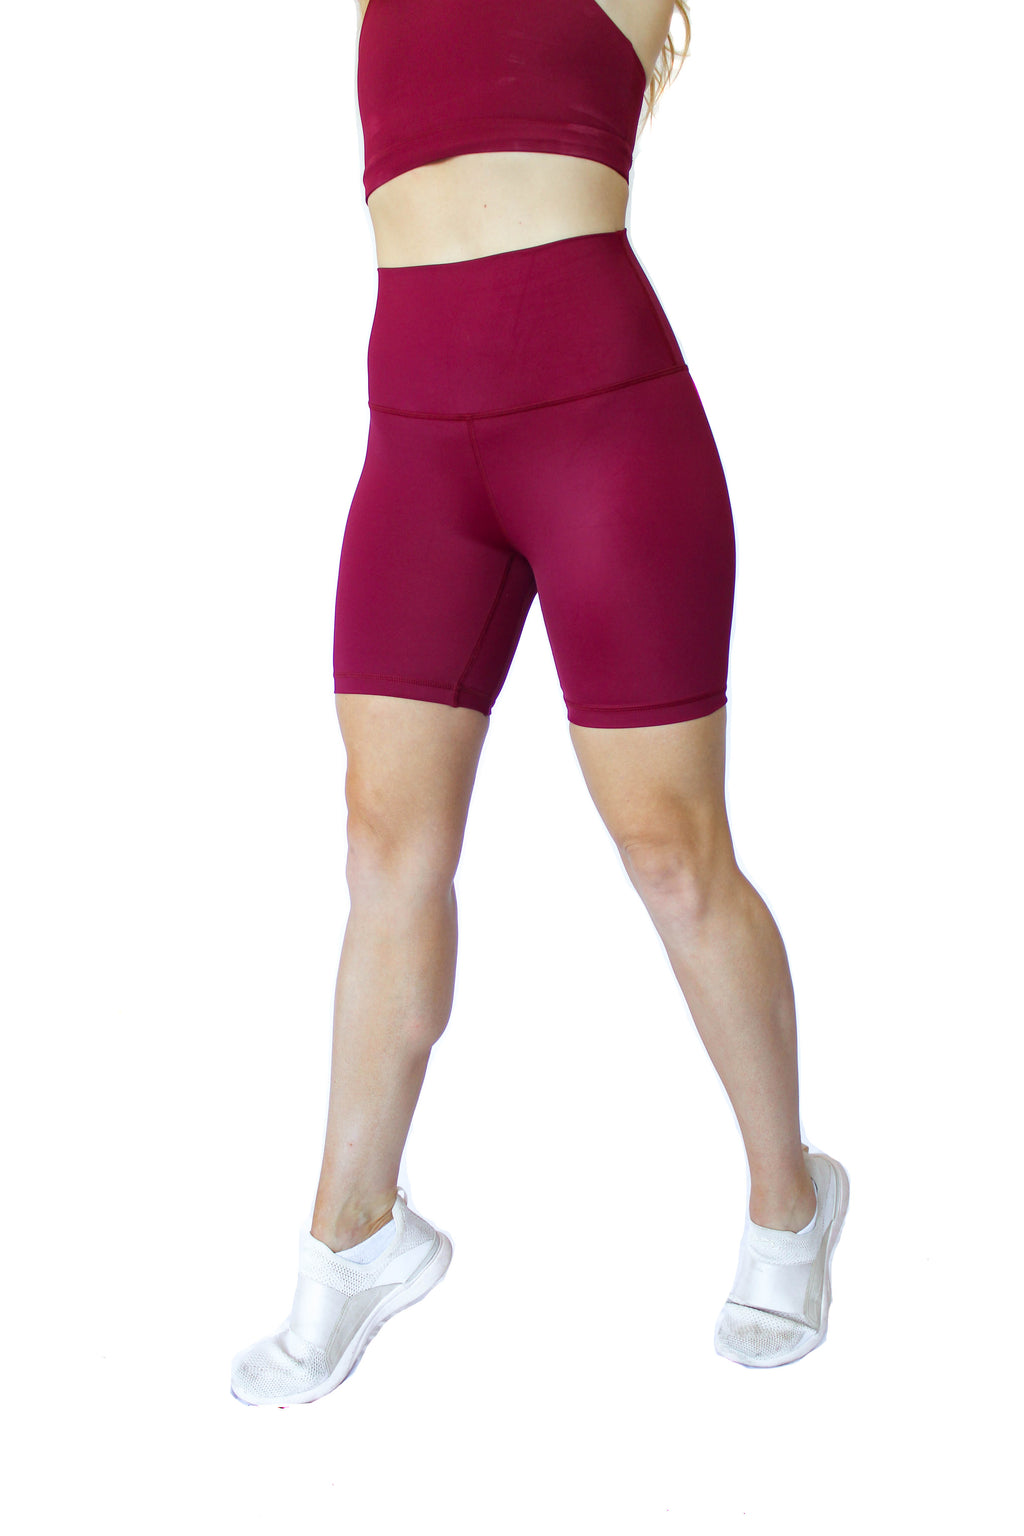 Maria High Rise Bike Short - Atún